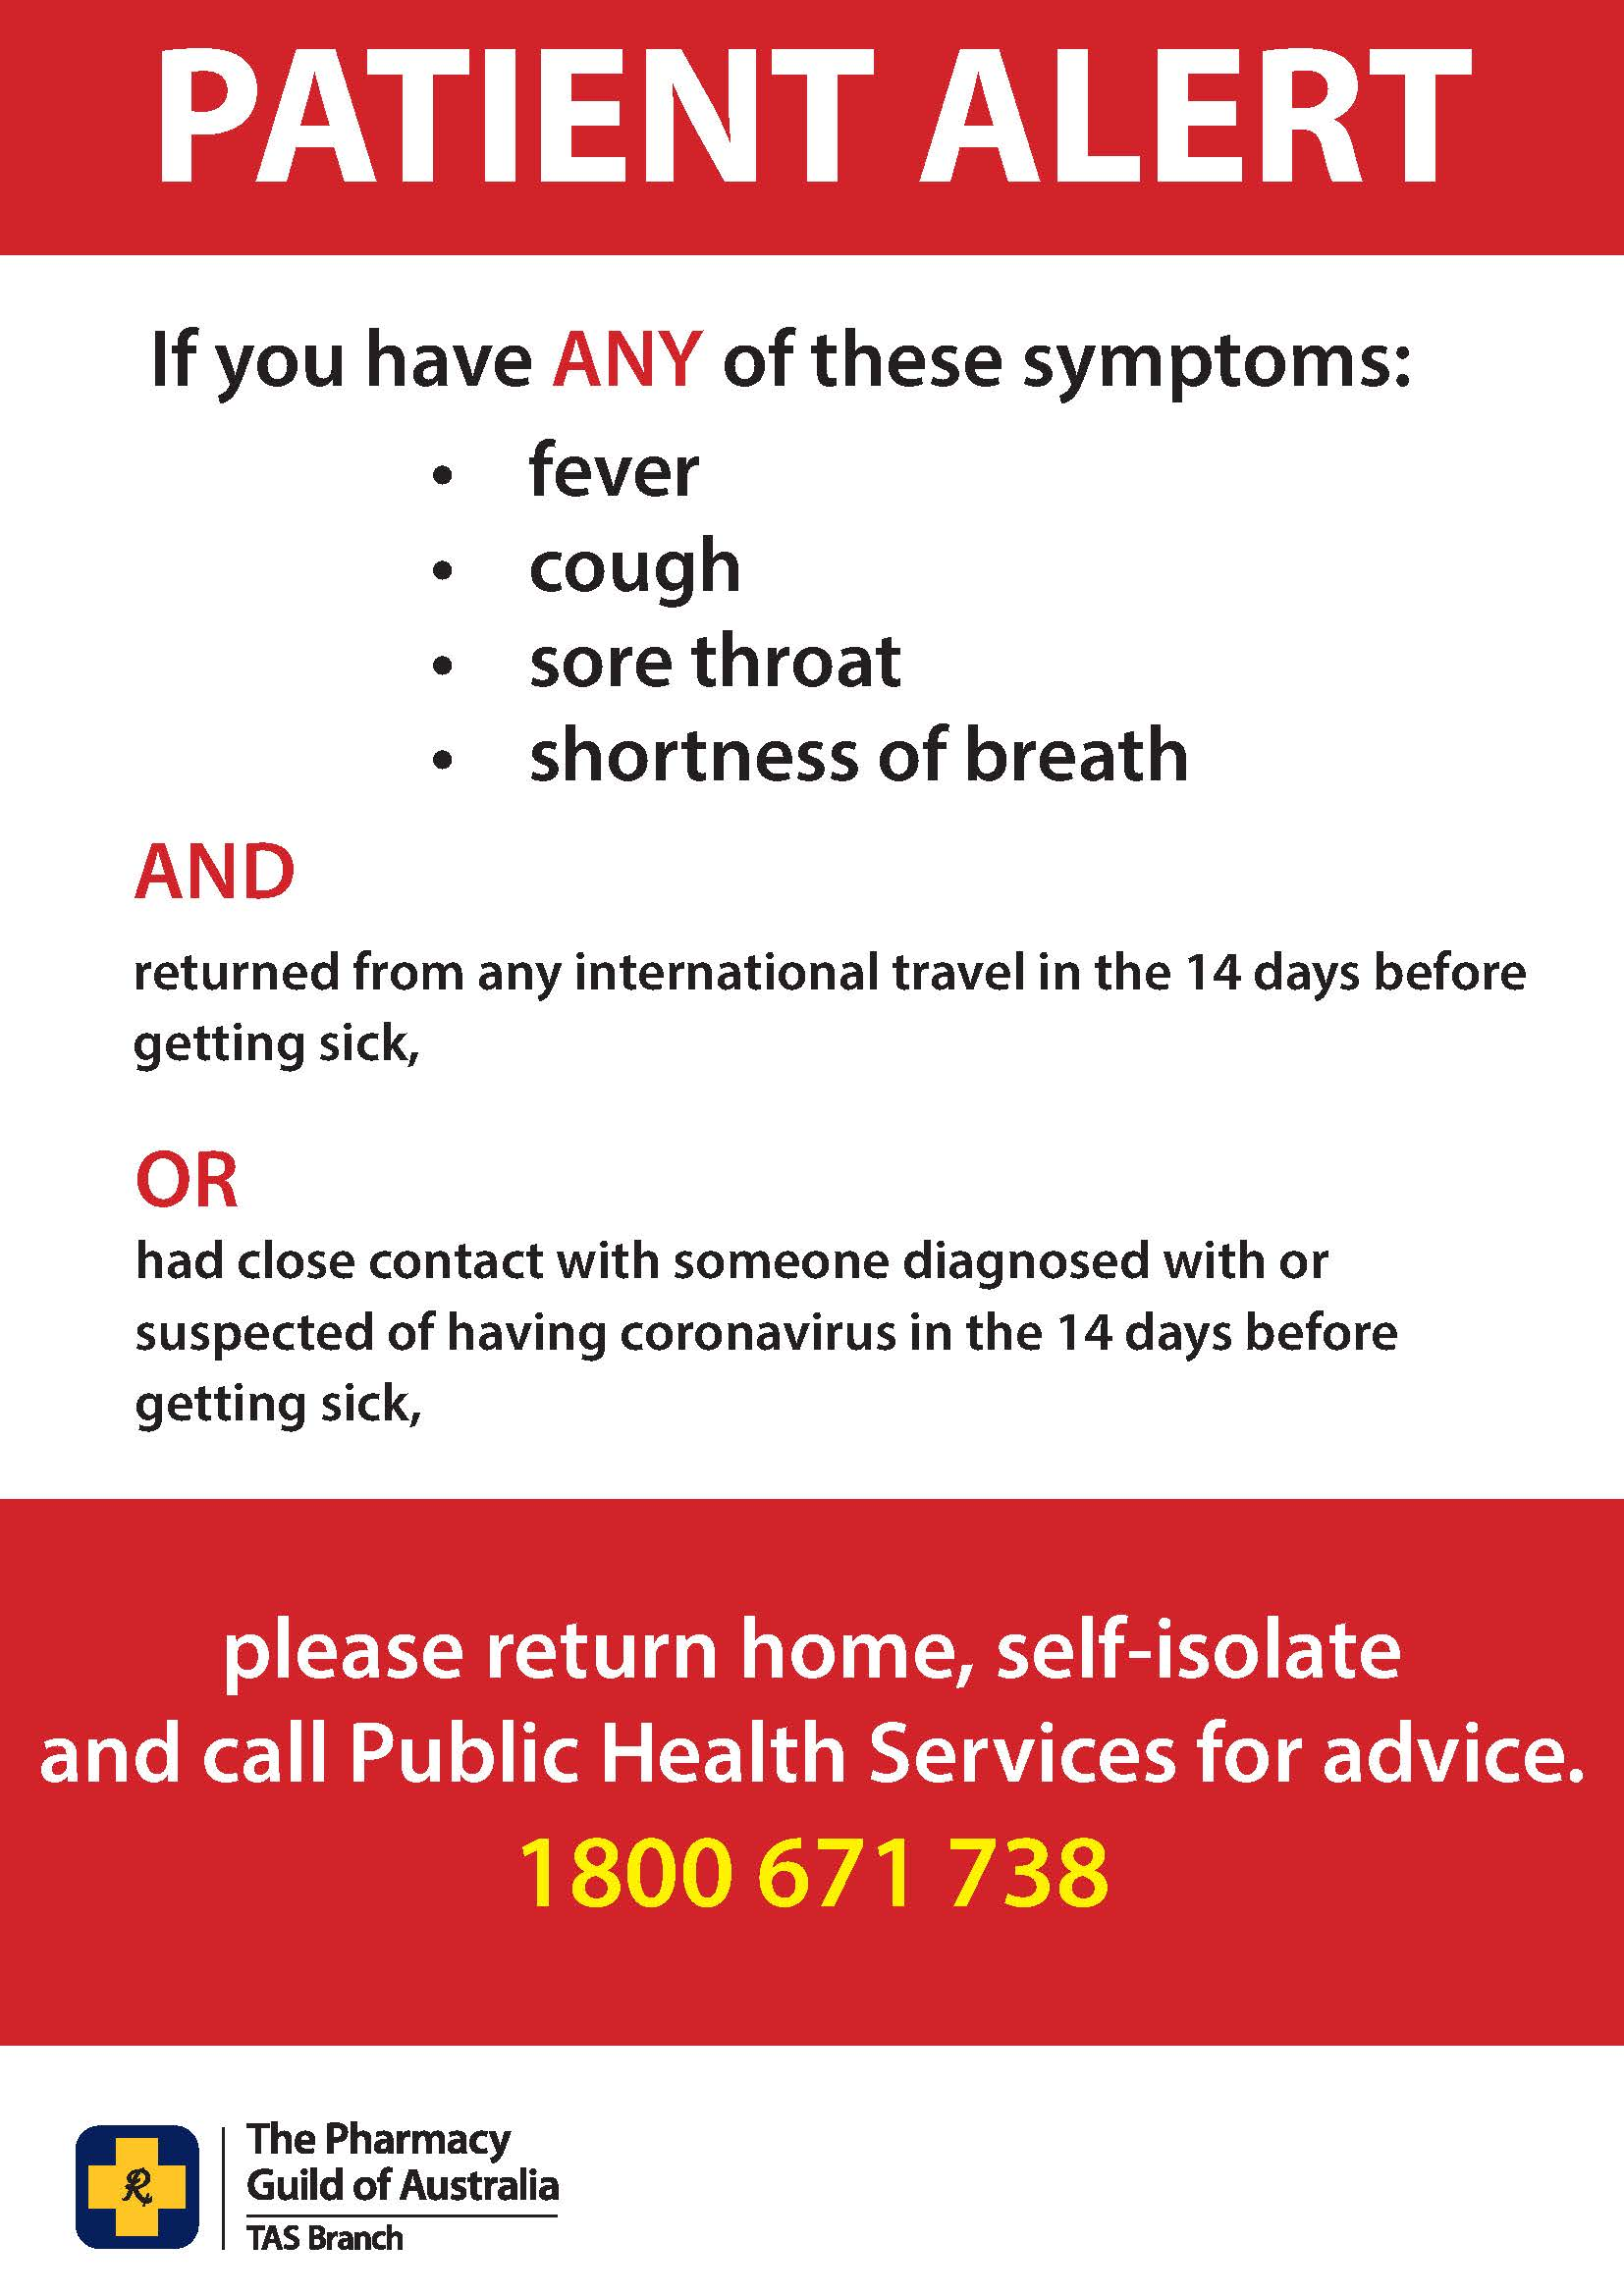 Poster - Patient Alert Poster (without phone number)